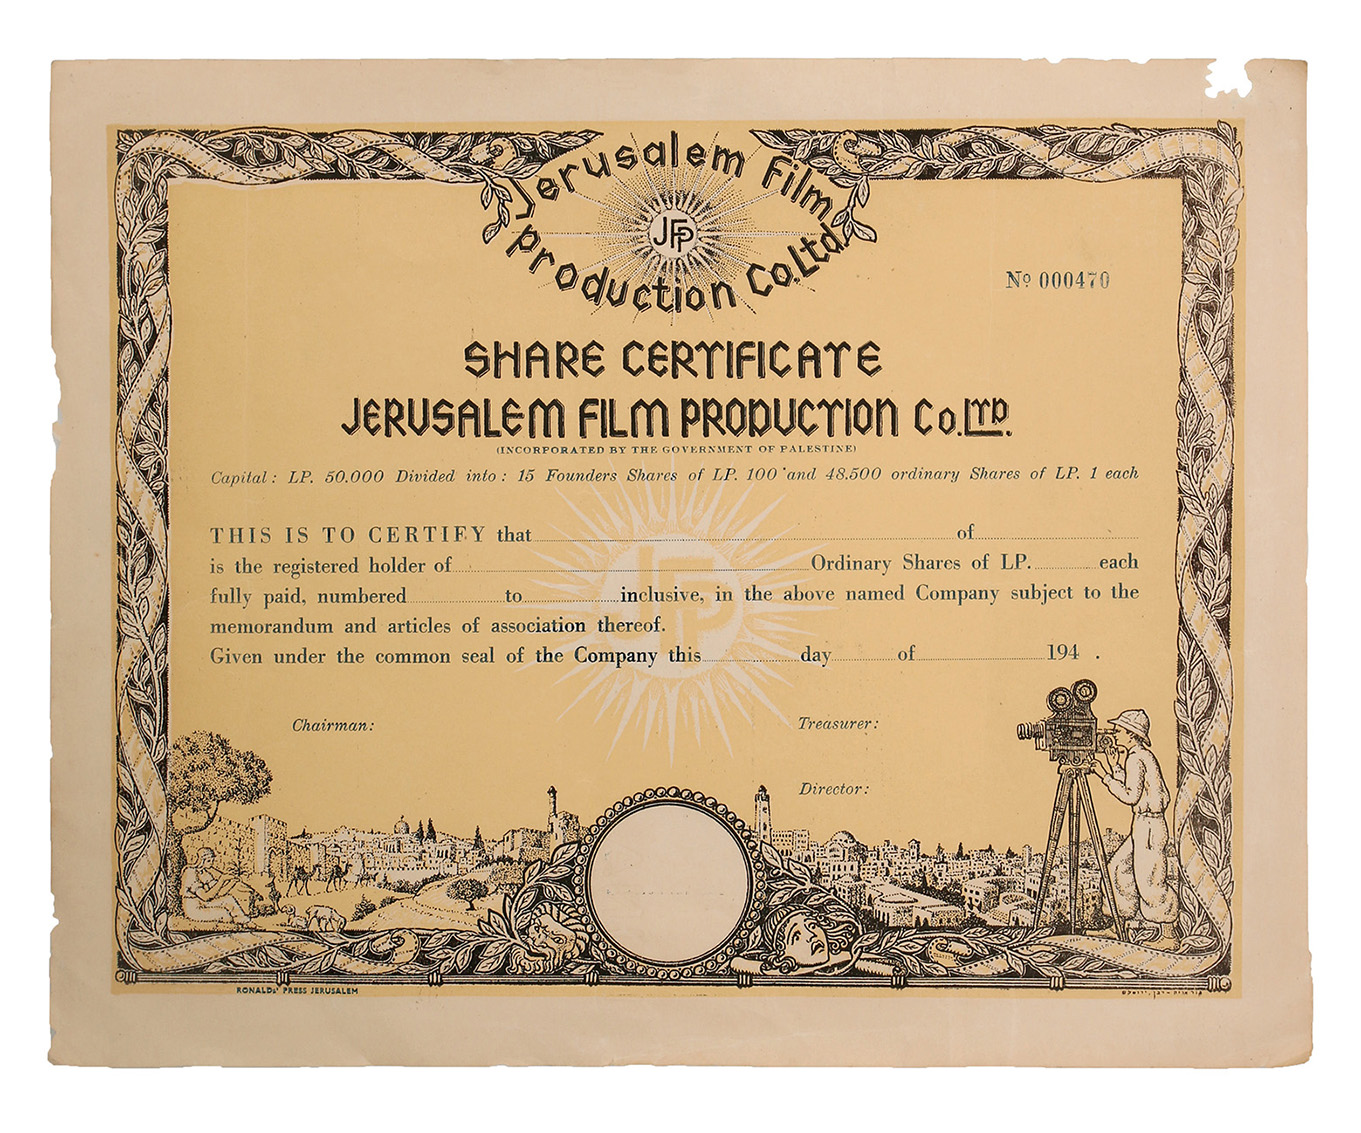 Share Certificate, Blank. 28X35 Cm. Good Fair Condition. Worming At  Margins. Creases. Enclosed: Official Stationery Of The Company. See  Following Item.  Blank Share Certificates